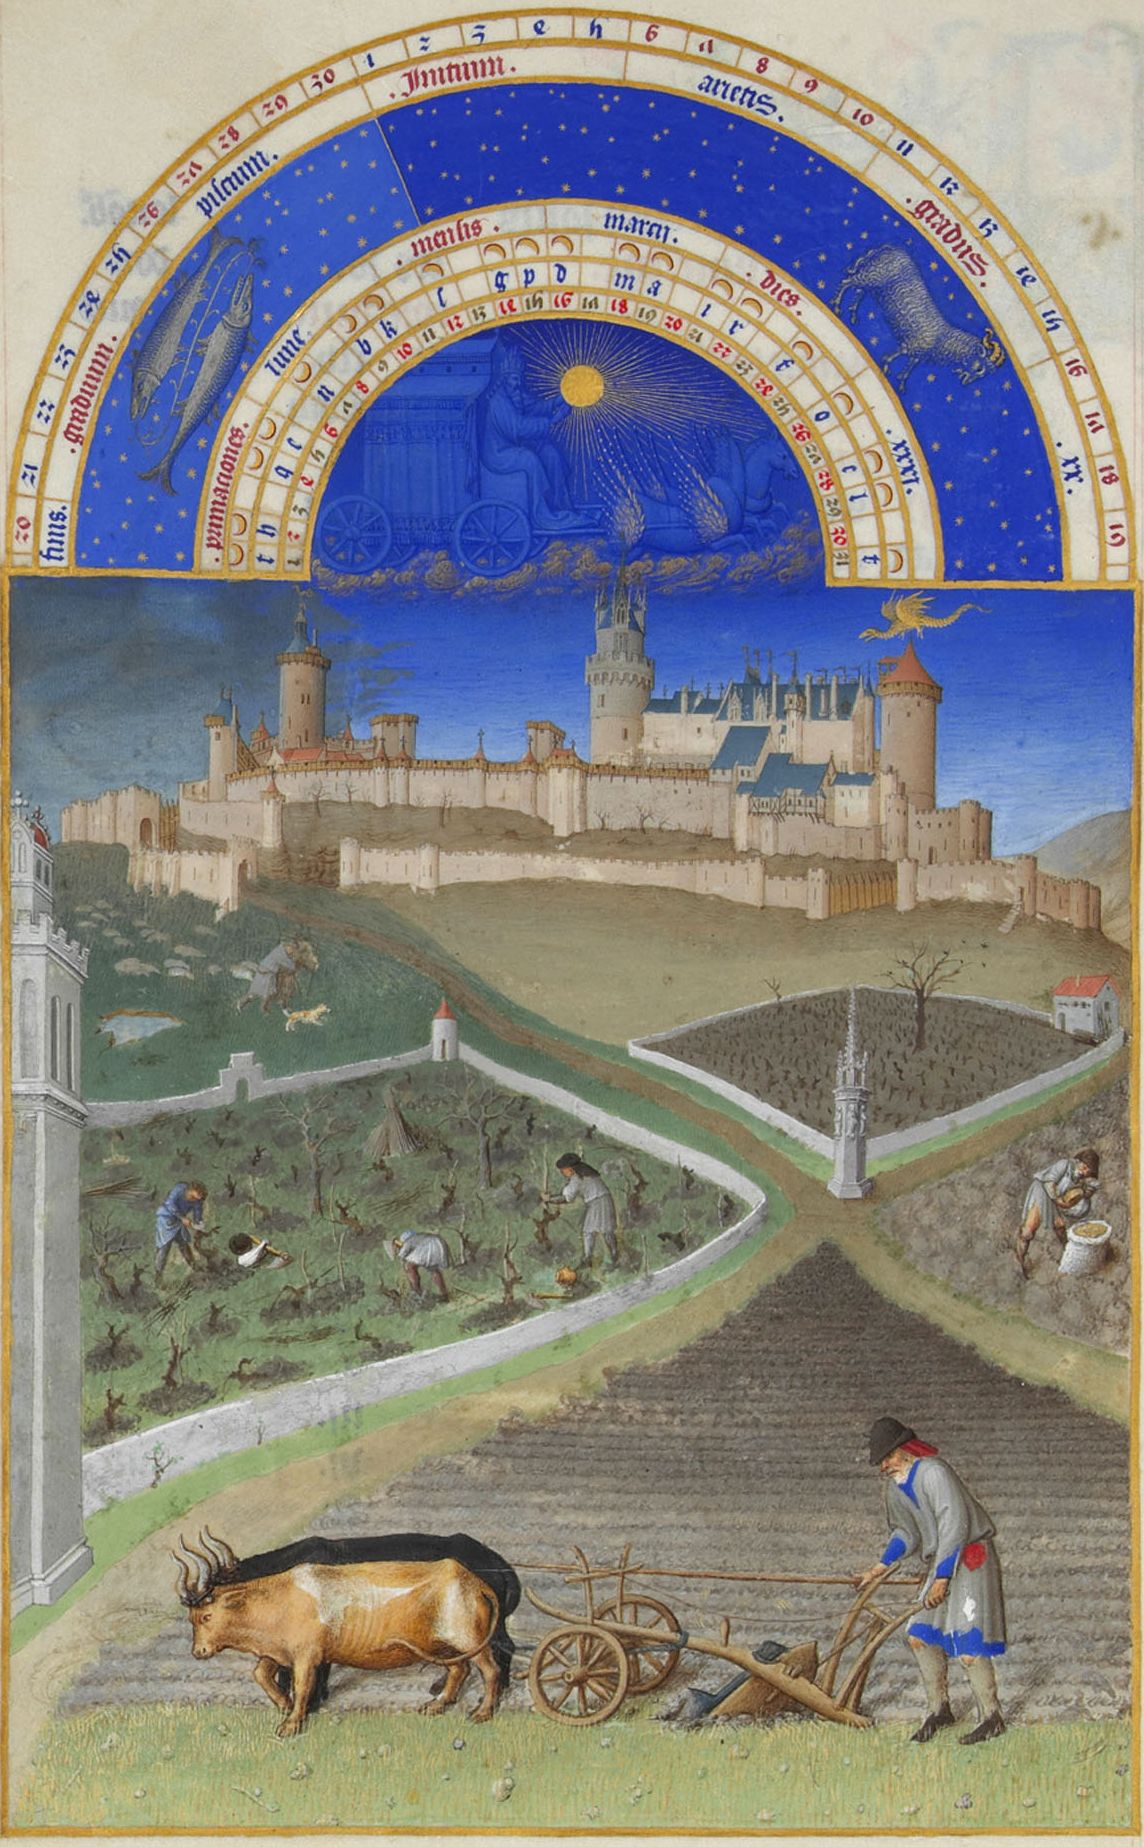 """Limbourg Brothers, """"The Book of Hours."""" Plowing, sowing, processing vineyard."""